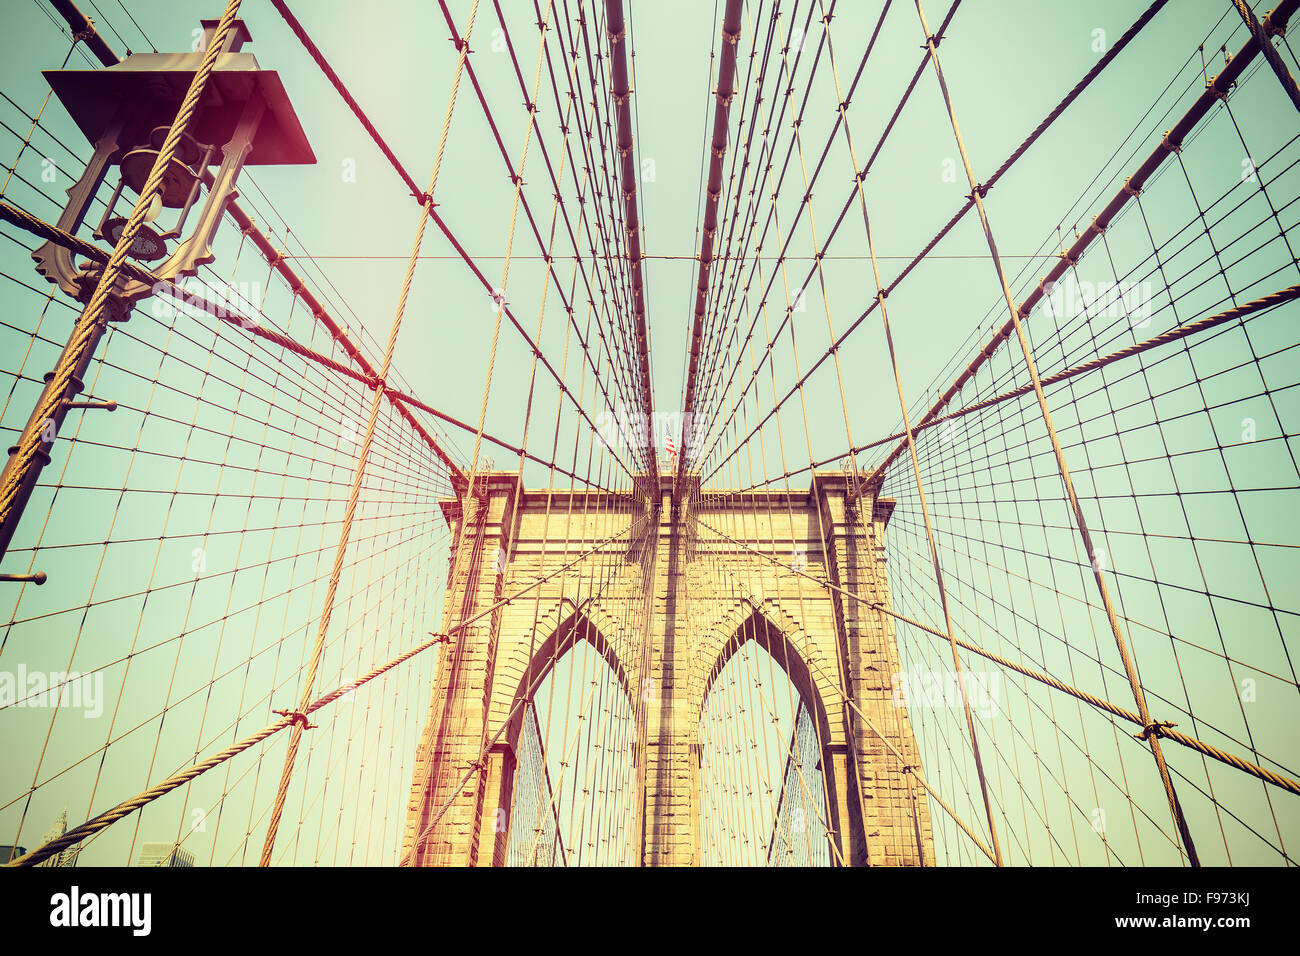 Retro toned picture of the Brooklyn Bridge in New York City, USA. - Stock Image